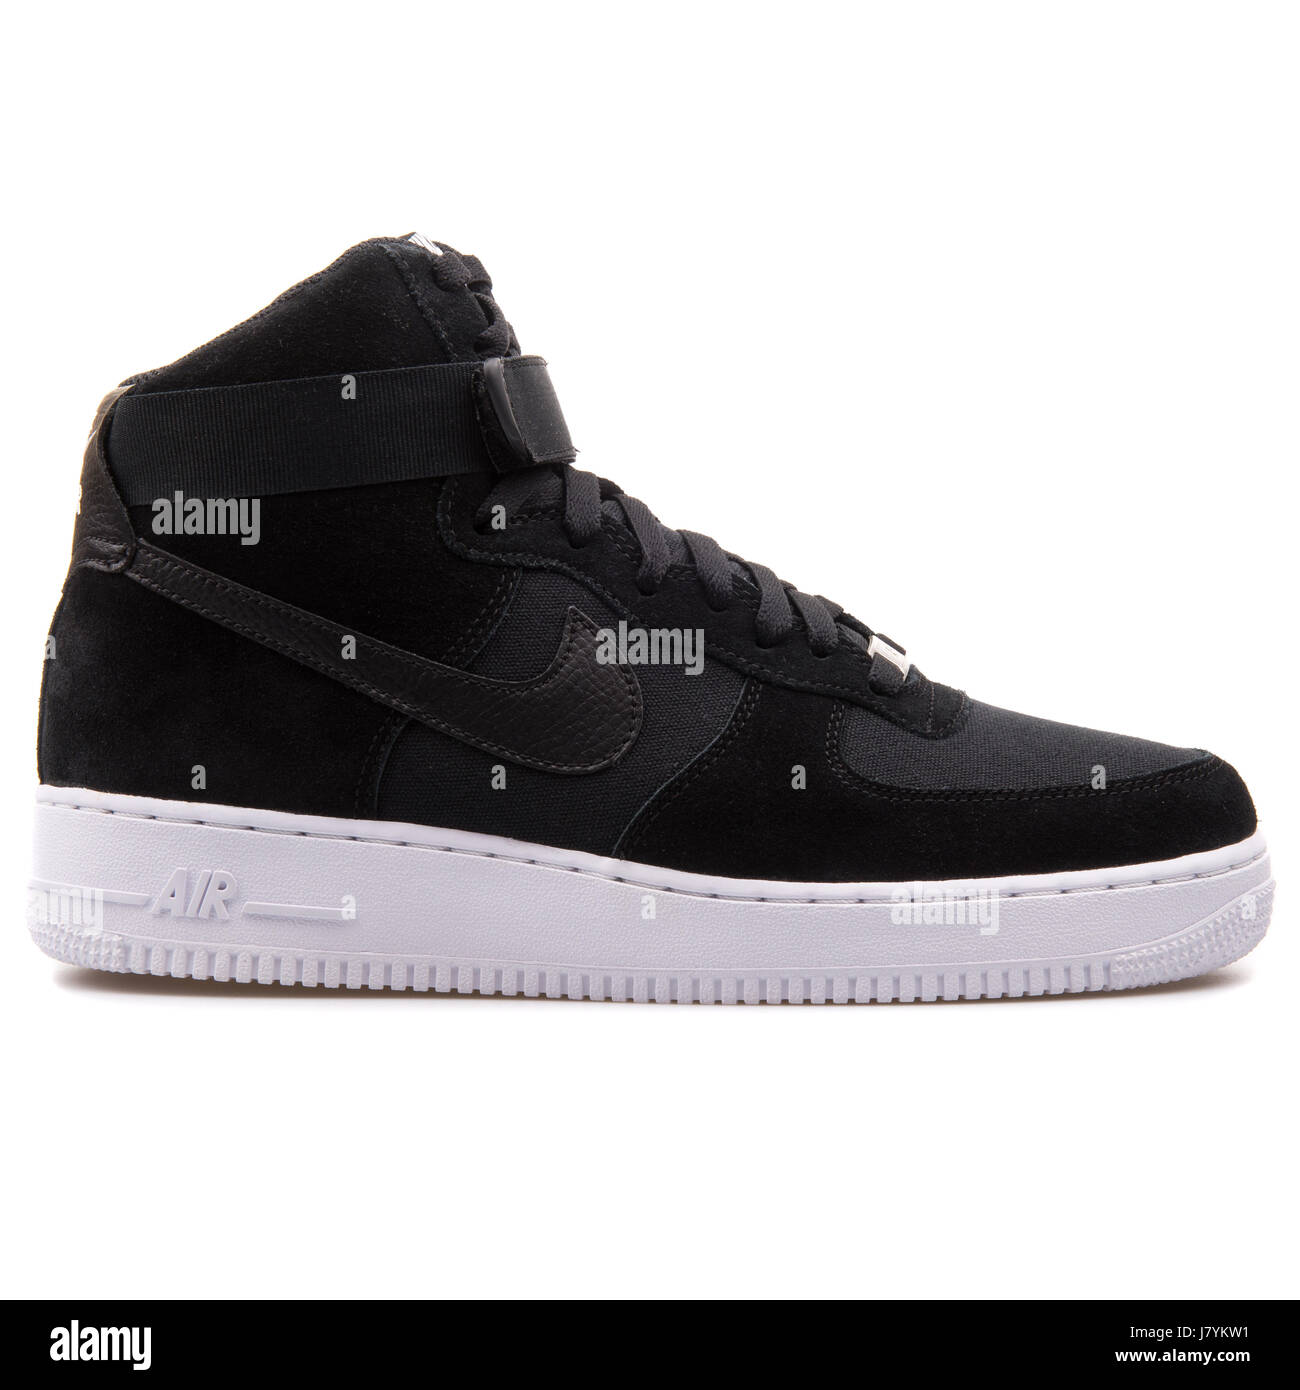 Black High Top Nike Sneakers Trainers Banque d'image et